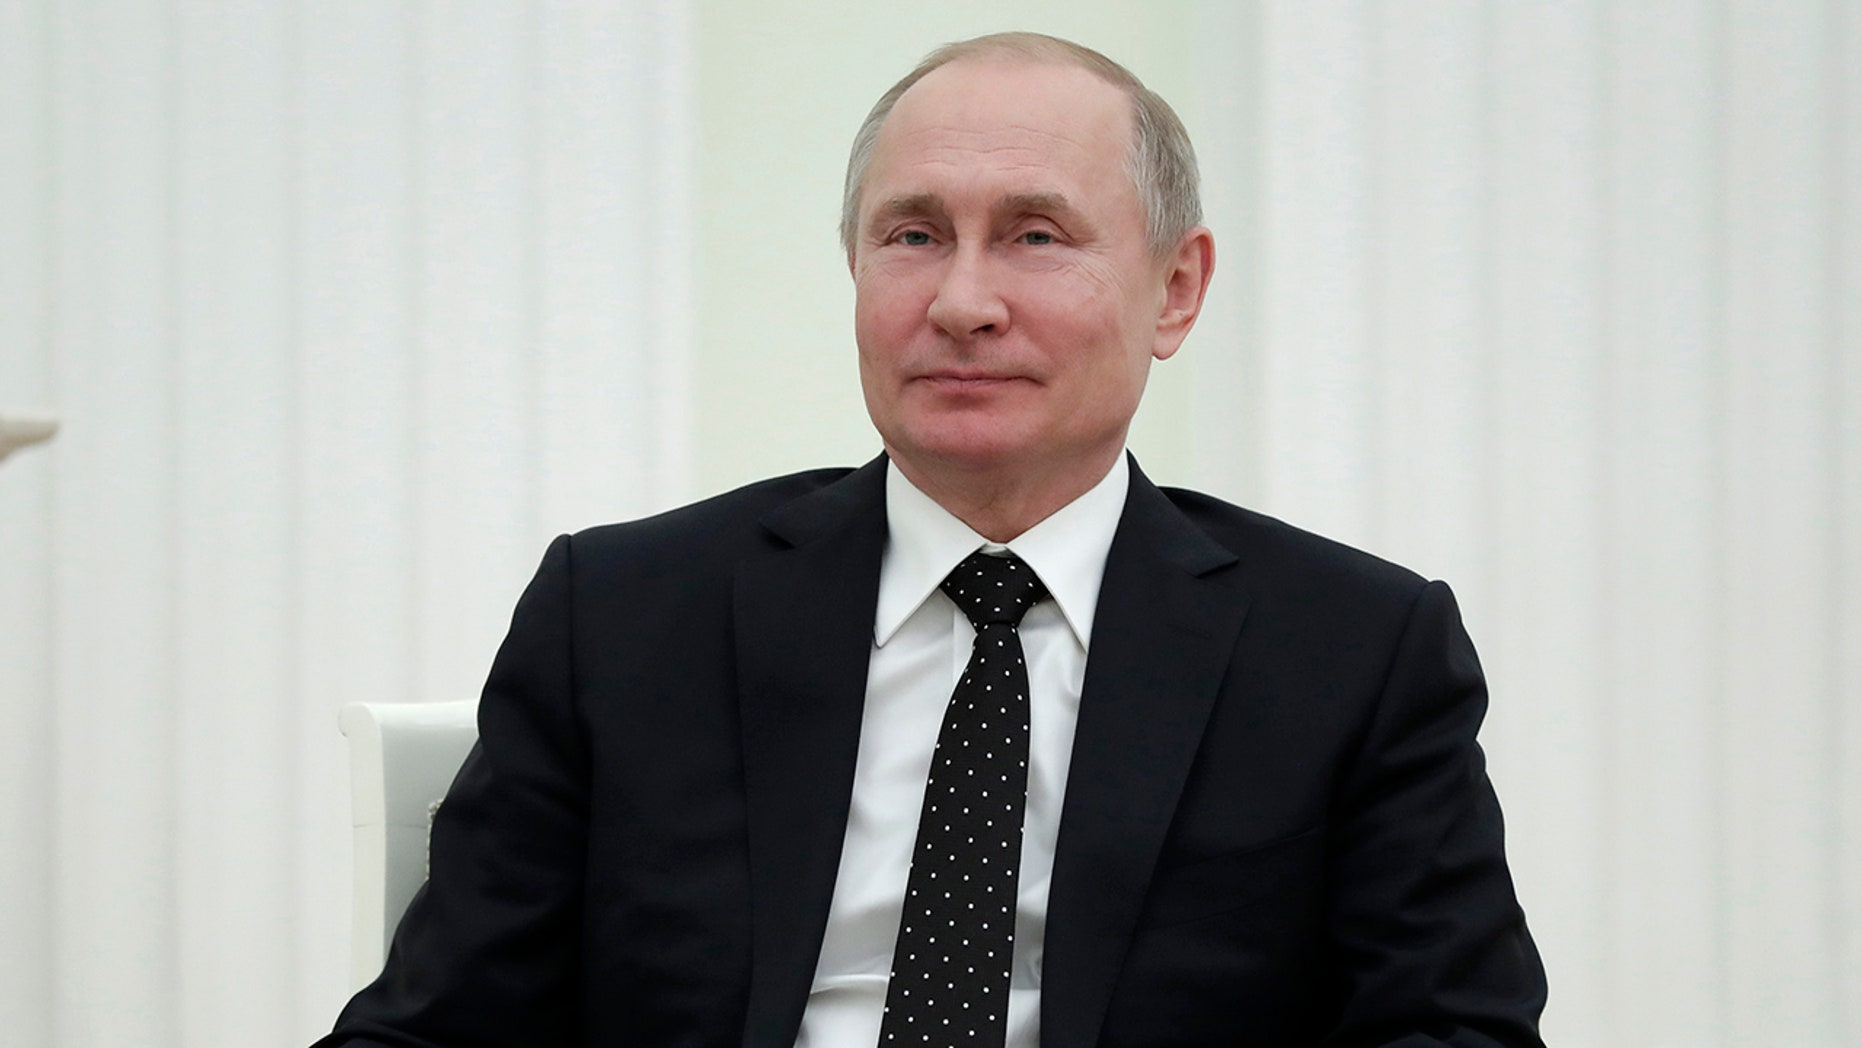 Russian President Vladimir Putin during meeting with Anatoly Bibilov, the leader of Georgia's breakaway region of South Ossetia, in the Kremlin in Moscow, Russia, Wednesday, March 6, 2019.